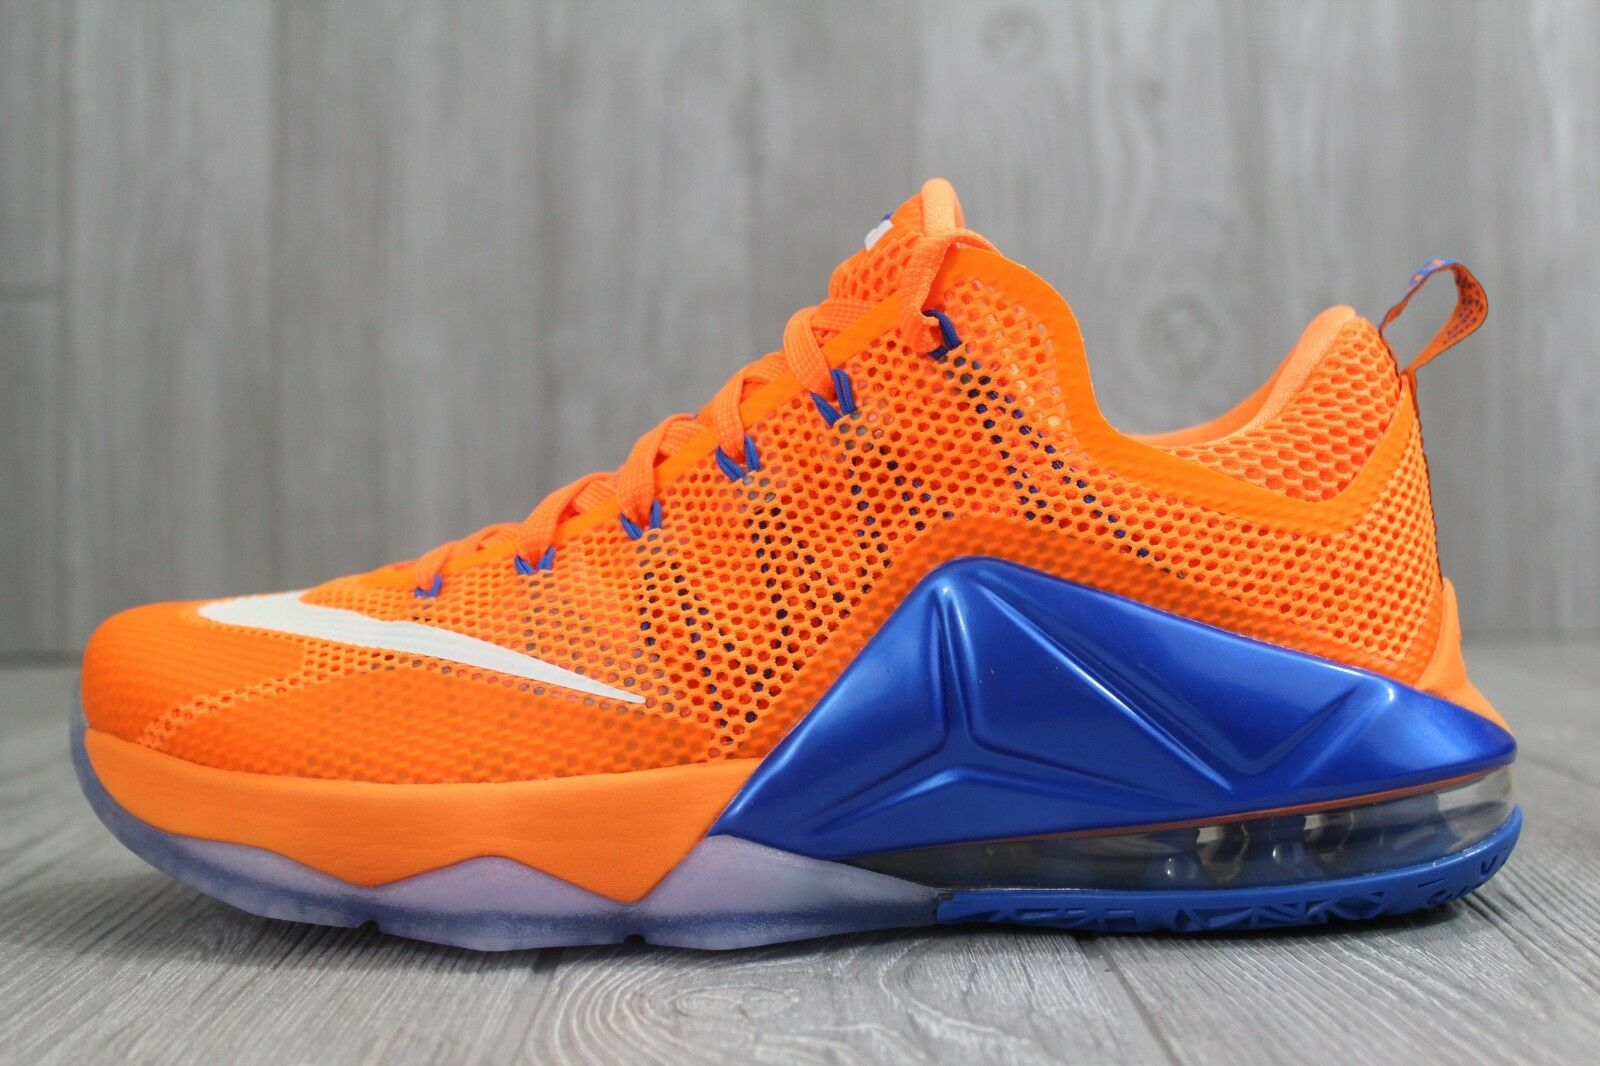 32 Nike Lebron XII 12 Low Citrus Knicks Basketball Shoes Comfortable Wild casual shoes